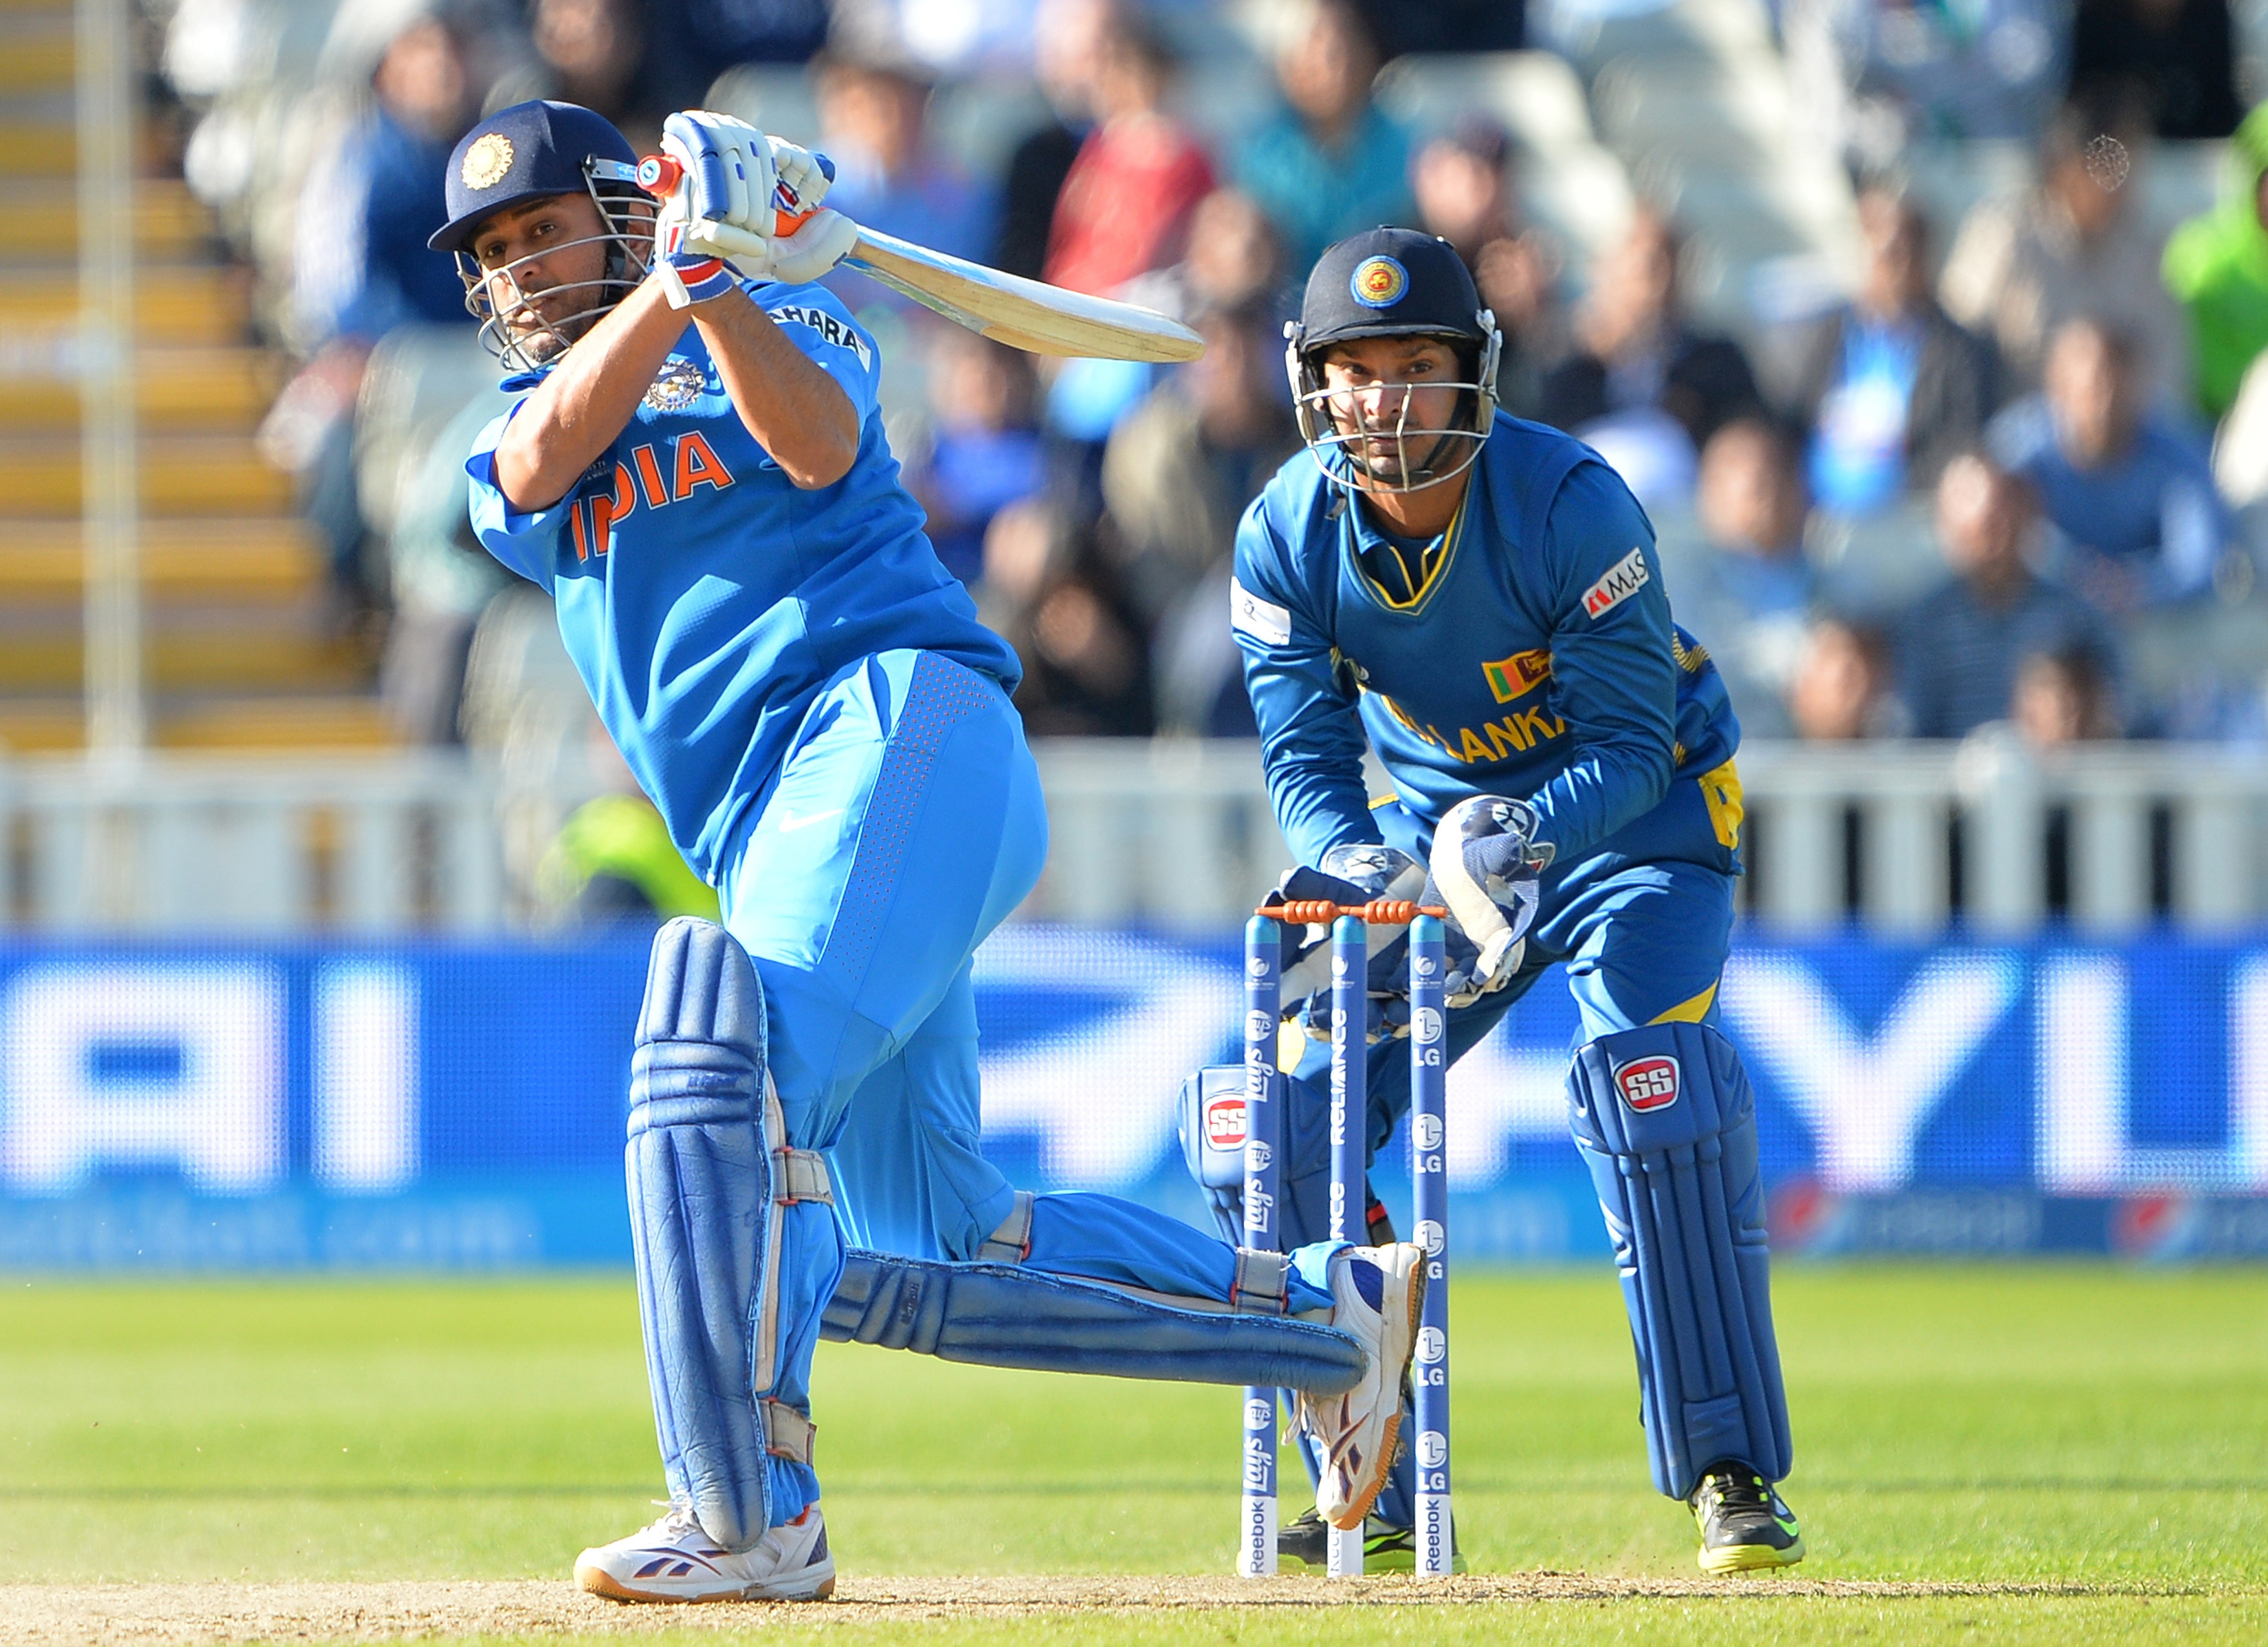 Dhoni then came in at number seven and spent some crucial time in the middle by scoring unbeaten 18 runs off 17 balls. He and Karthik (106 not out) made sure the Indians reached the target with an over to spare.